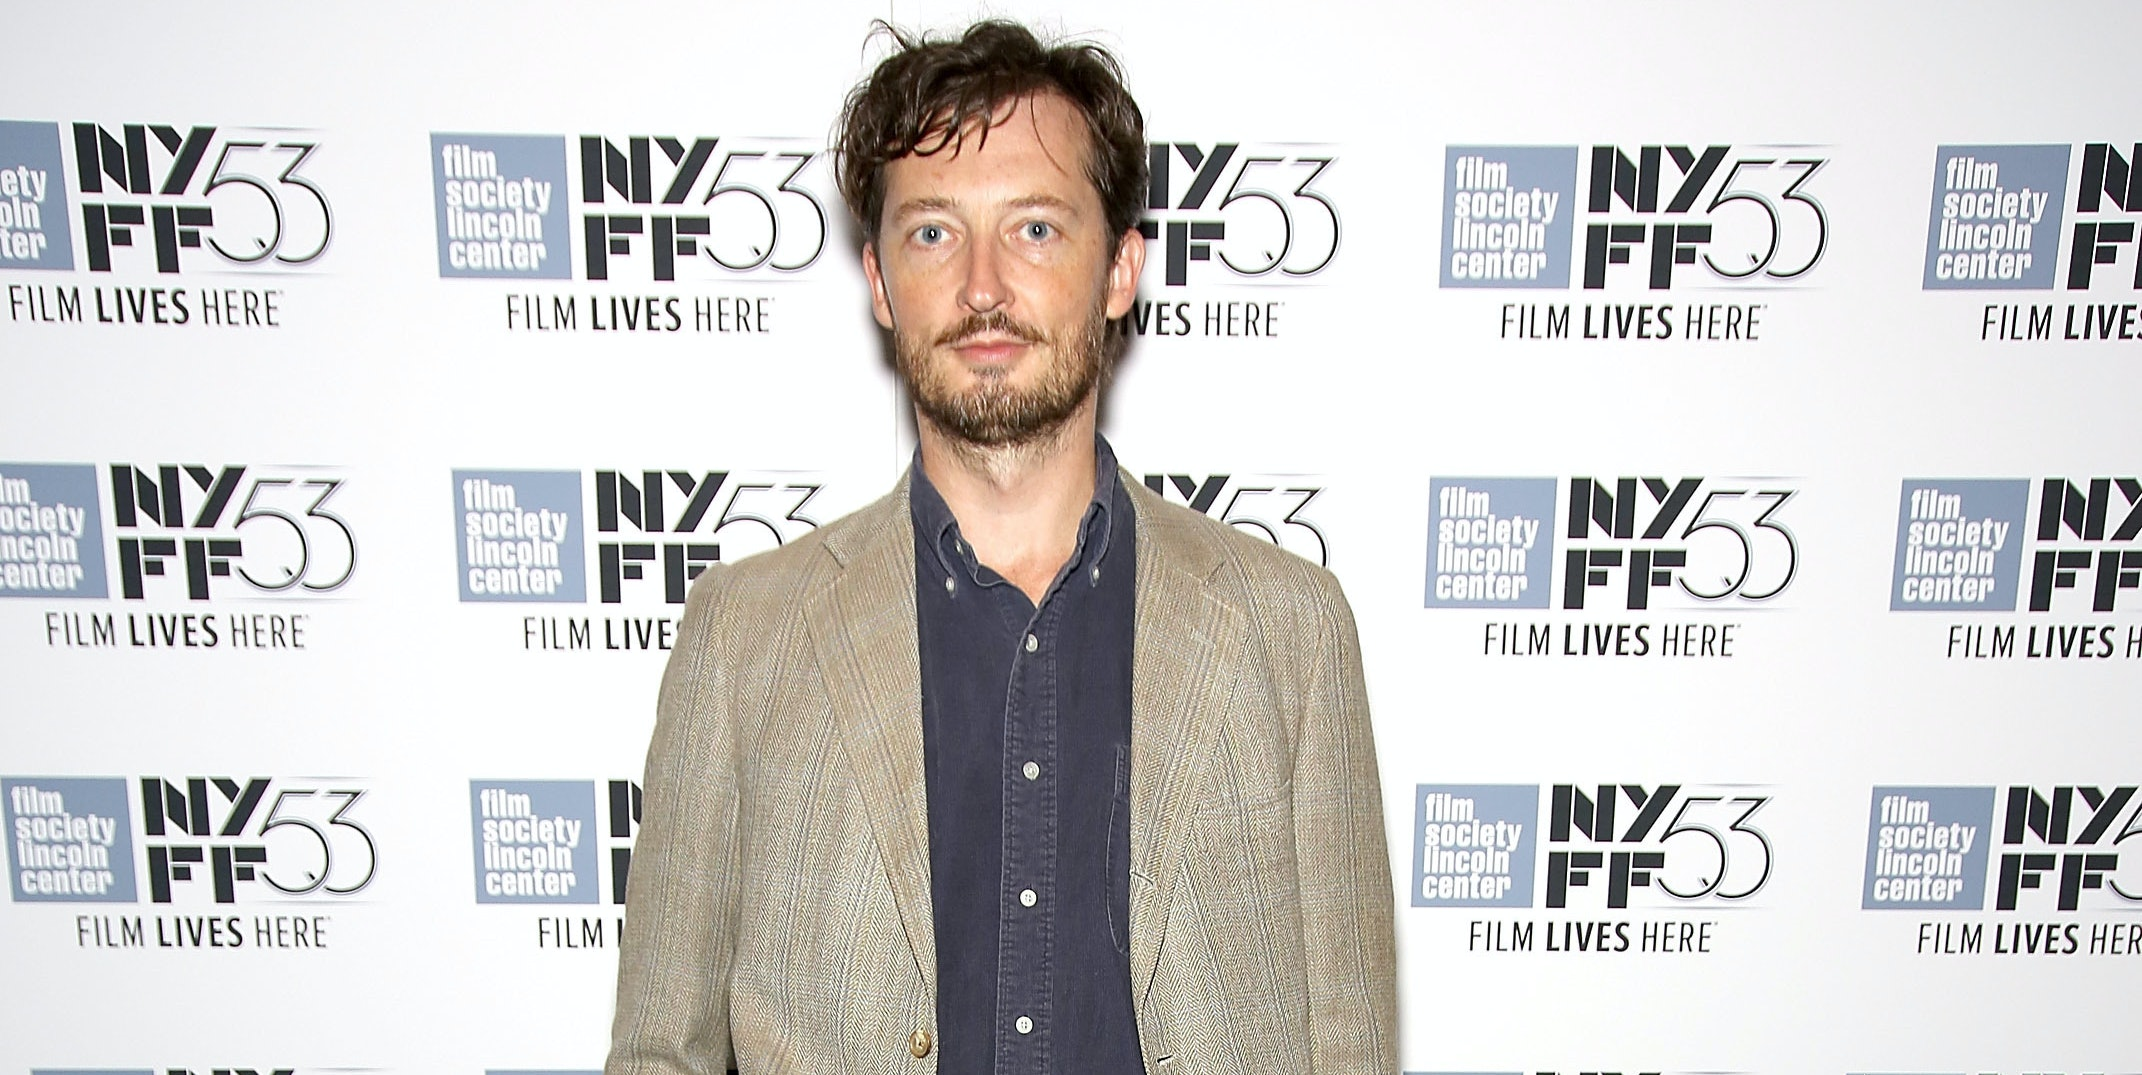 NEW YORK, NY - SEPTEMBER 27:  Dustin Guy Defa attends the 53rd New York Film Festival 'Field Of Vision' Q&A at Walter Reade Theater on September 27, 2015, in New York City.  (Photo by Paul Zimmerman/Getty Images)